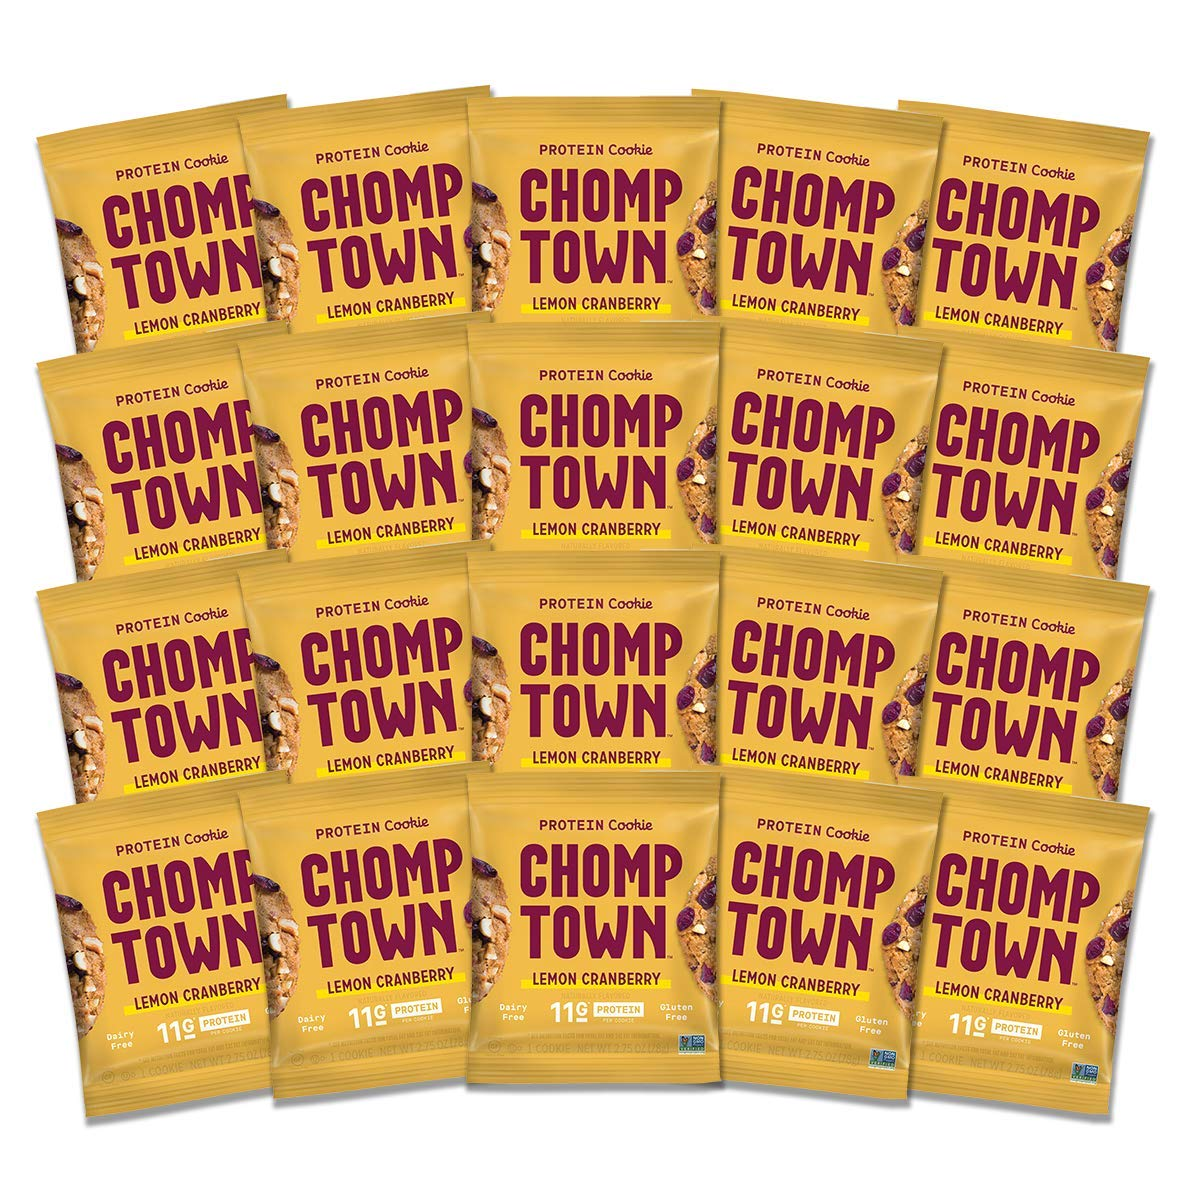 Chomptown | Lemon Cranberry | High-Protein Cookie | 11g Protein | Gluten-Free | Dairy-Free | Non-GMO | 2.75 oz (Pack of 20)